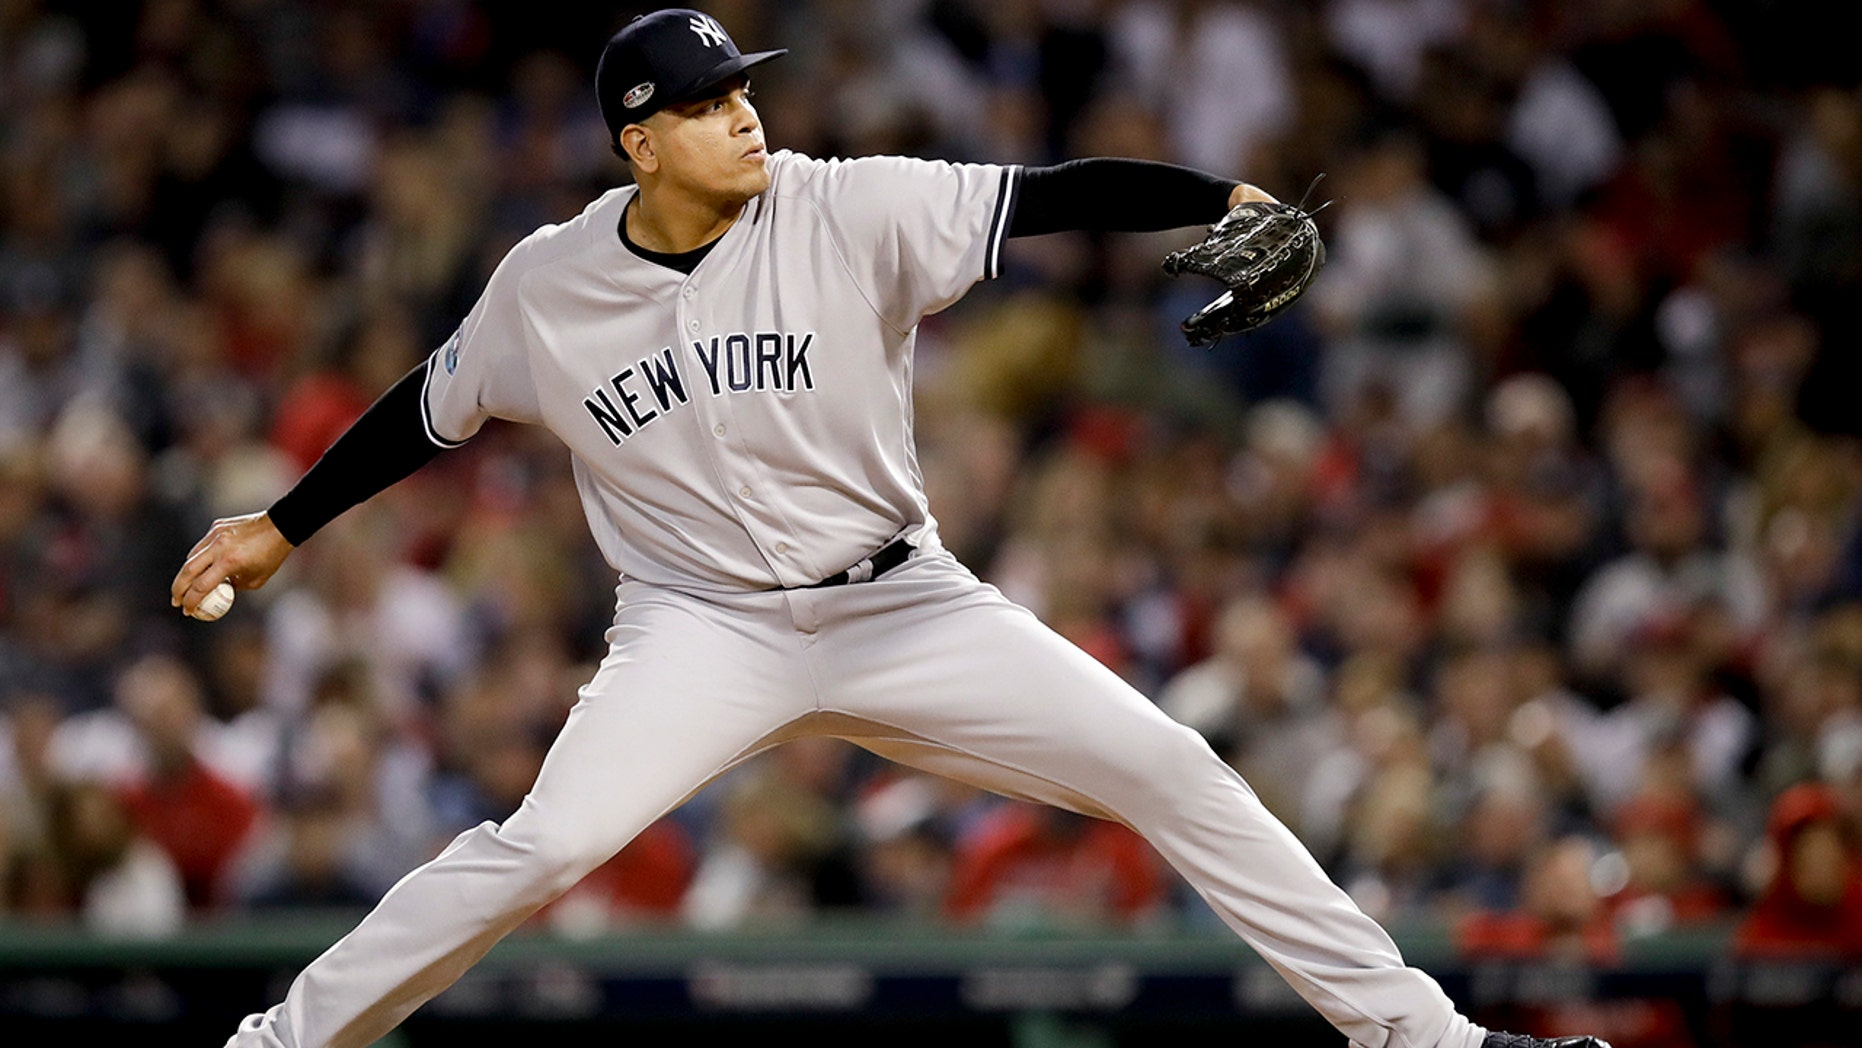 Yankees' Dellin Betances suffers partial tear of left Achilles